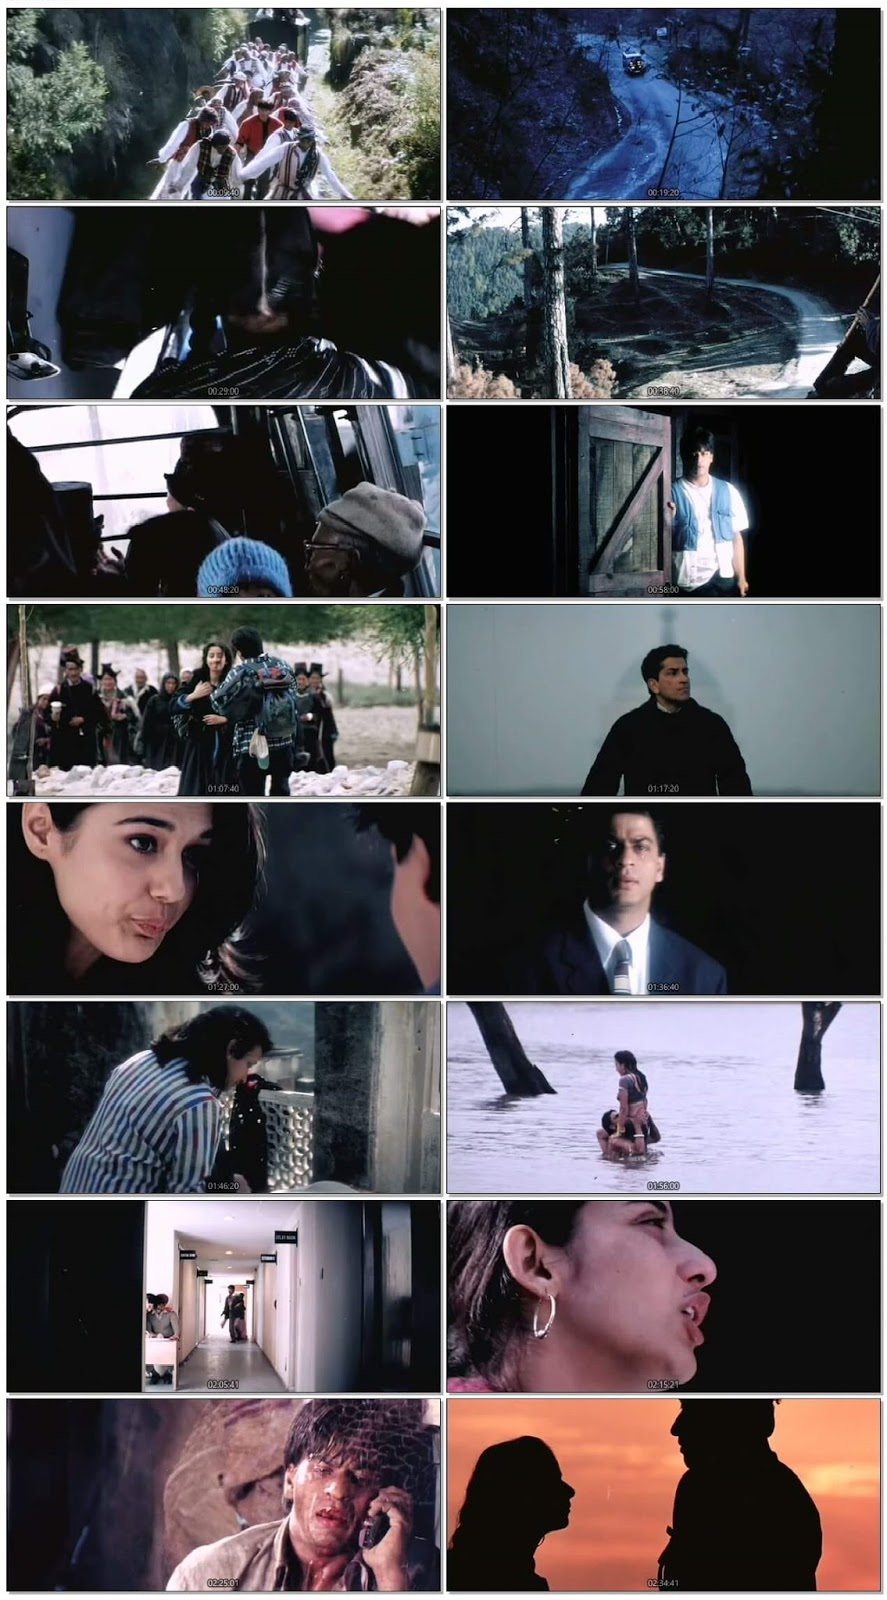 Dil Se 1998 world4free.ind.in 1080p DVDRip Hindi Movie Download